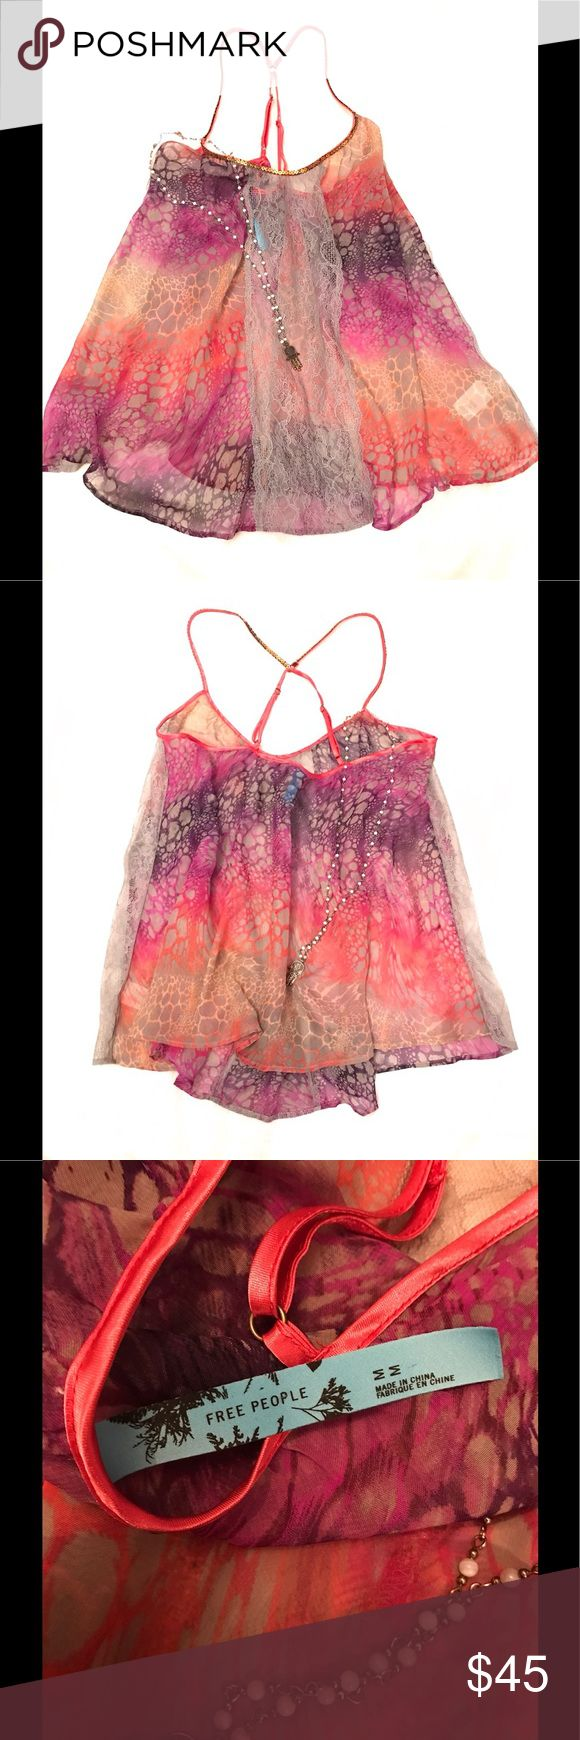 """Free People Sheer Animal Print Cami Top 💜 Free People Sheer Animal Print Cami Top. Size M, worn once. Sequin trim at neck and on straps. Lace insert in front and sides, poly. Approximately 20"""" in length, 26"""" wide.  Gorgeous, great for summer! 💜 Free People Tops Camisoles"""